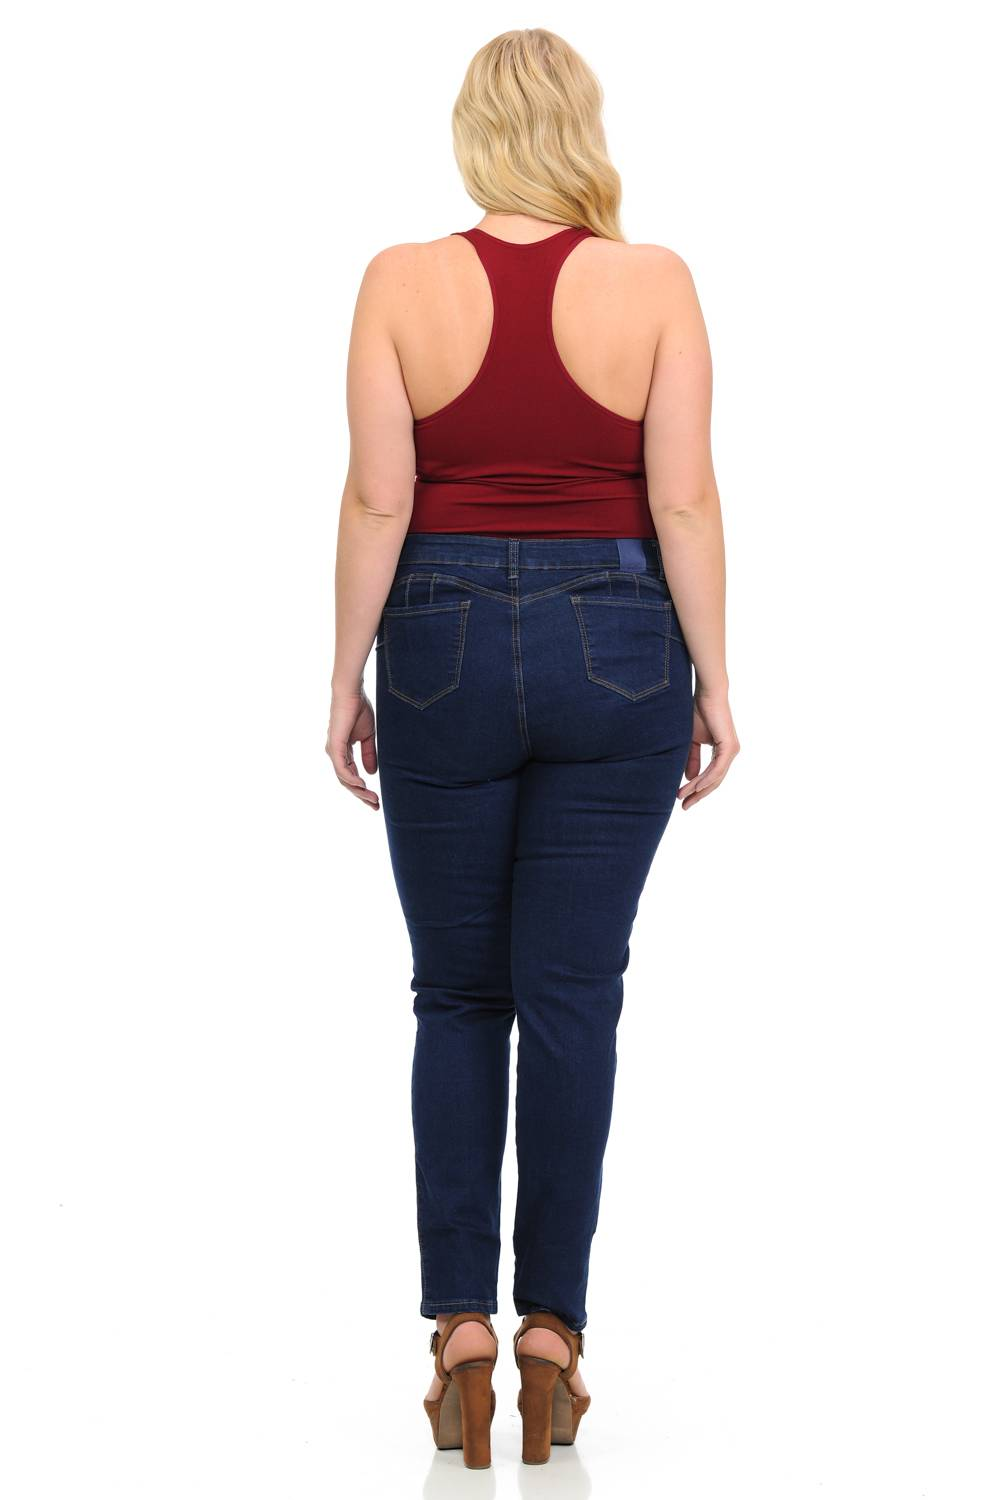 Sweet Look Missy Size High Waist Push Up Jeans